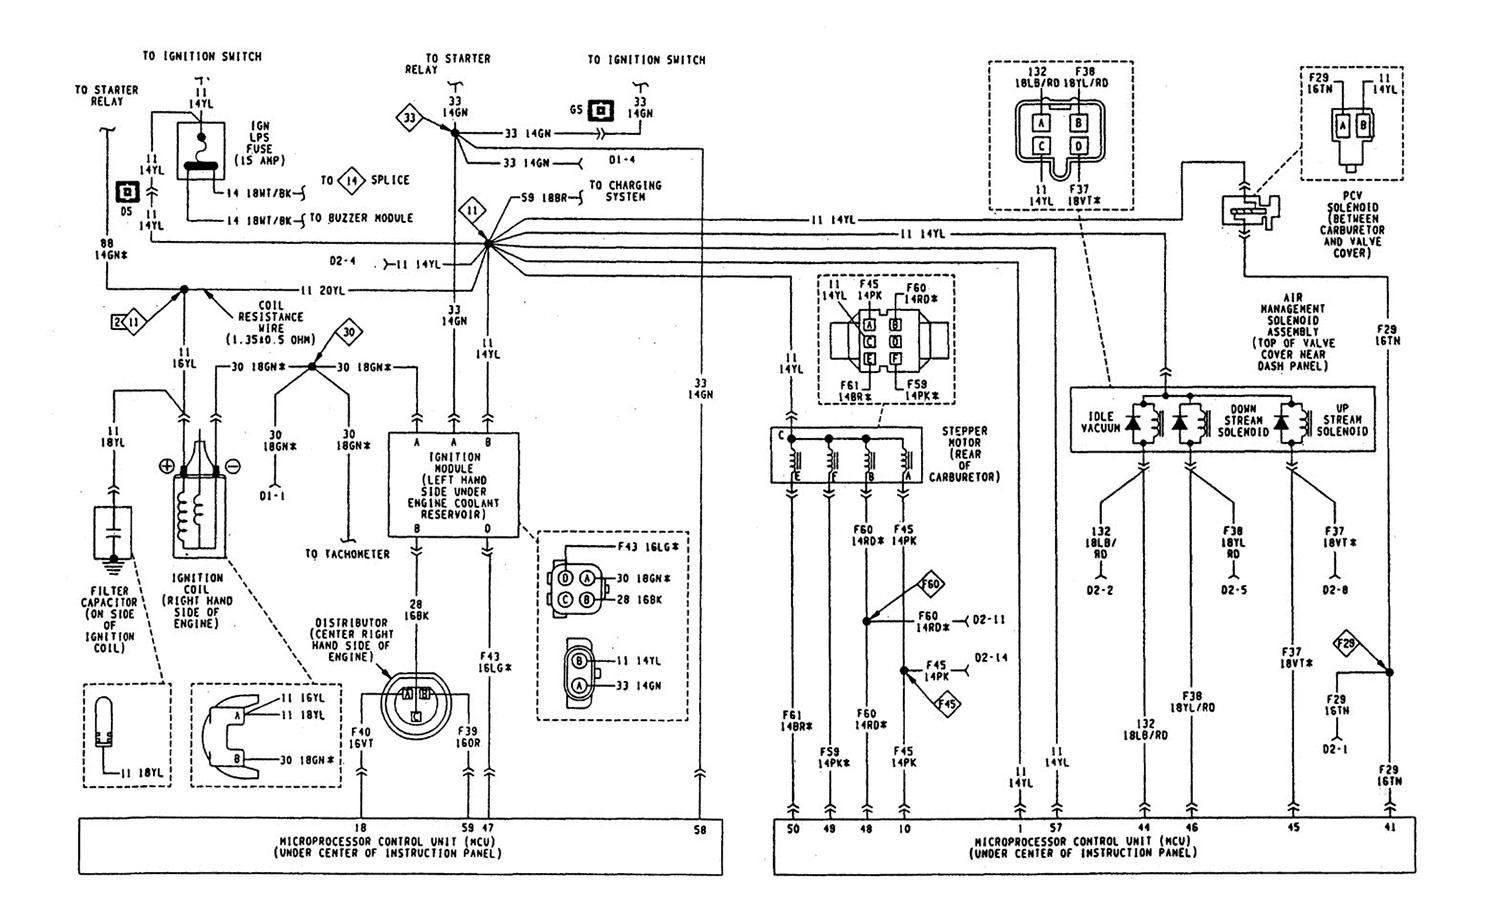 Wiring Diagram For Jeep Wrangler Tj The Wiring Diagram Jeep